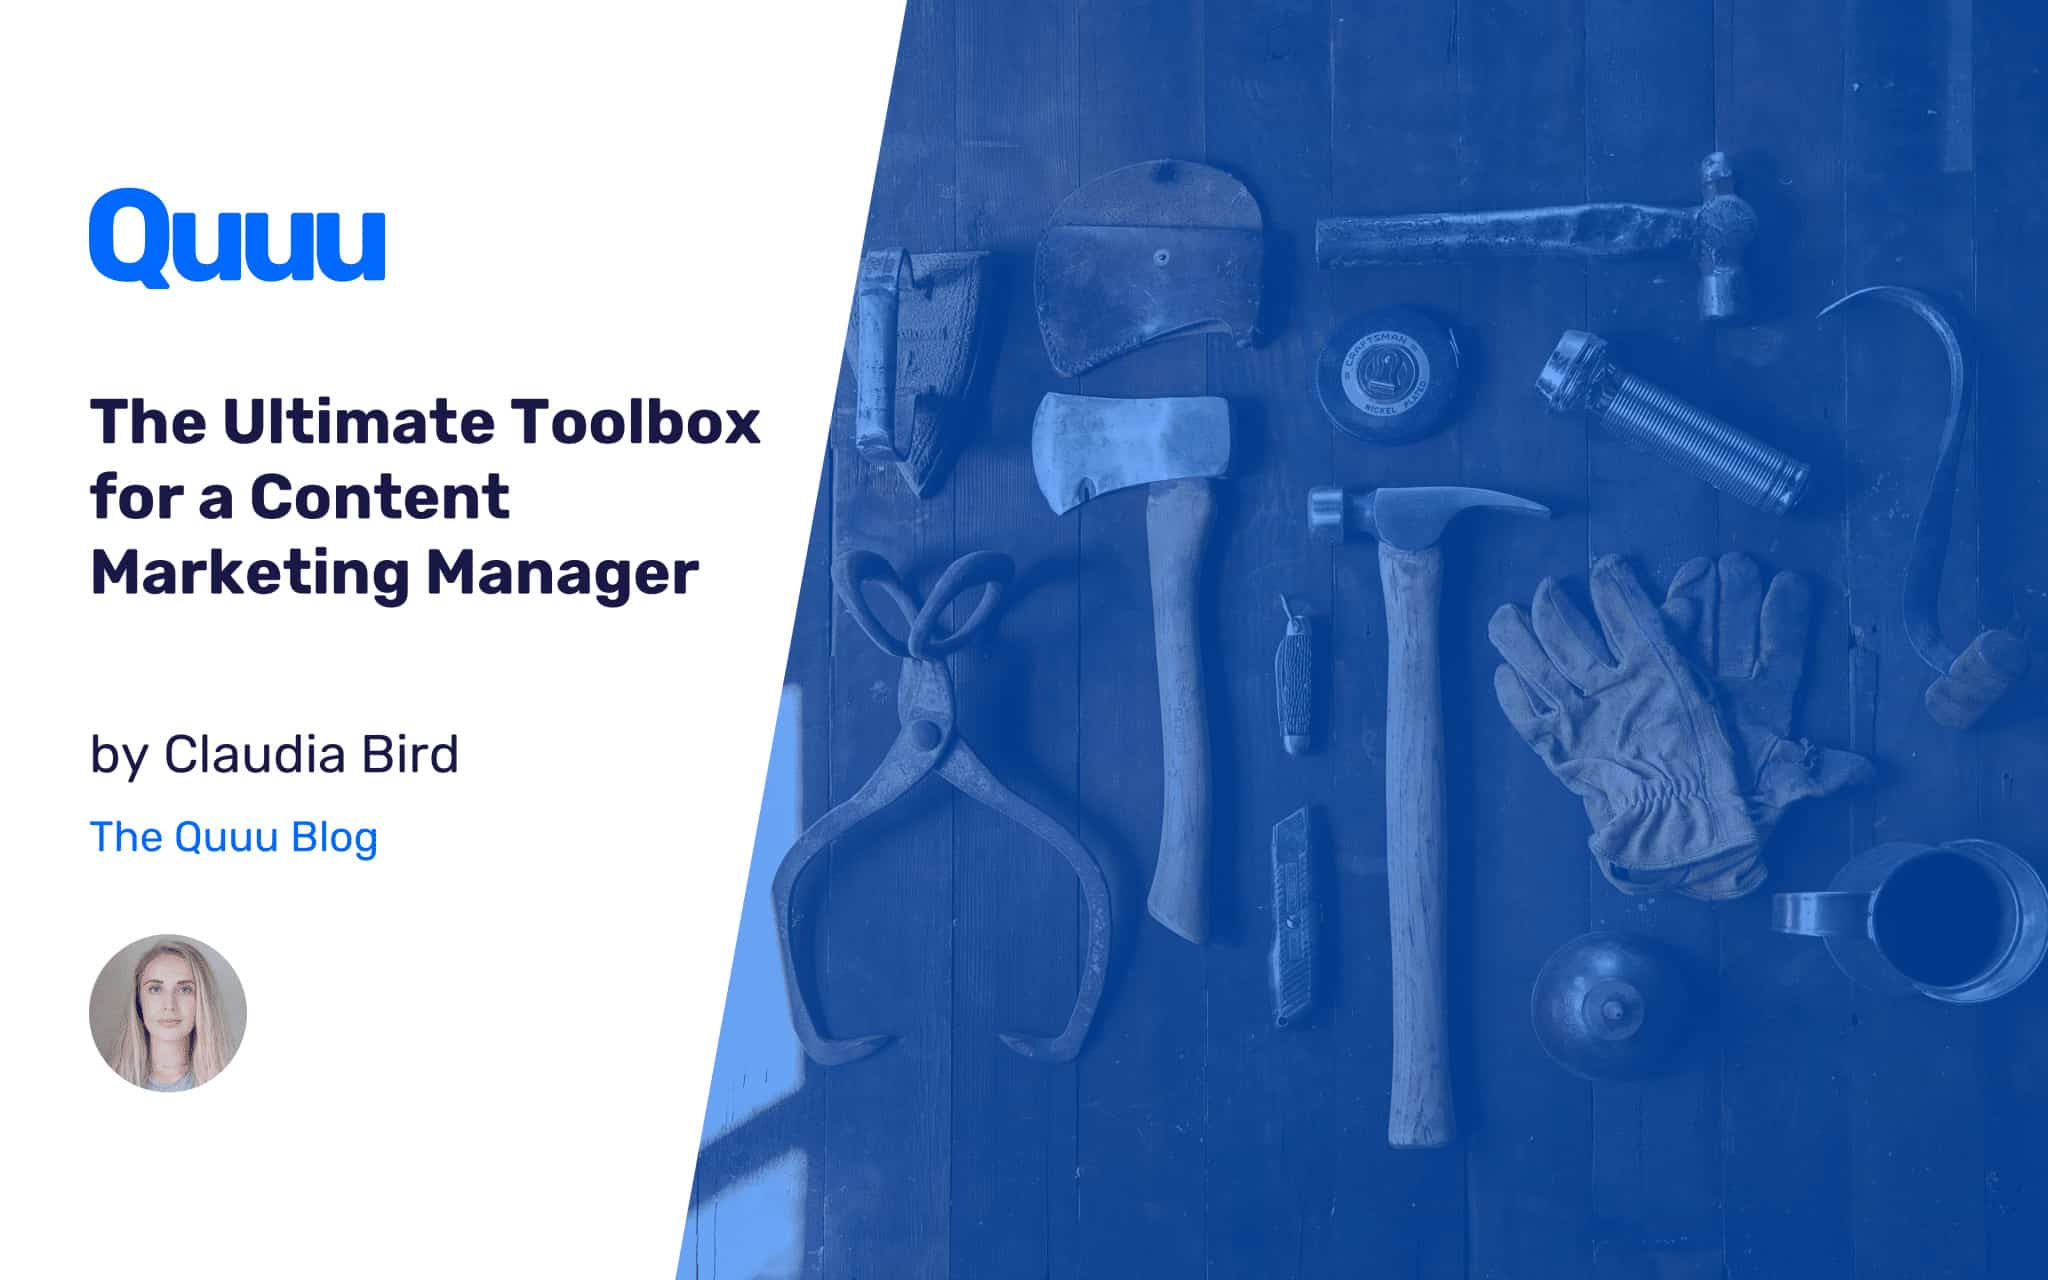 The Ultimate Toolbox for a Content Marketing Manager